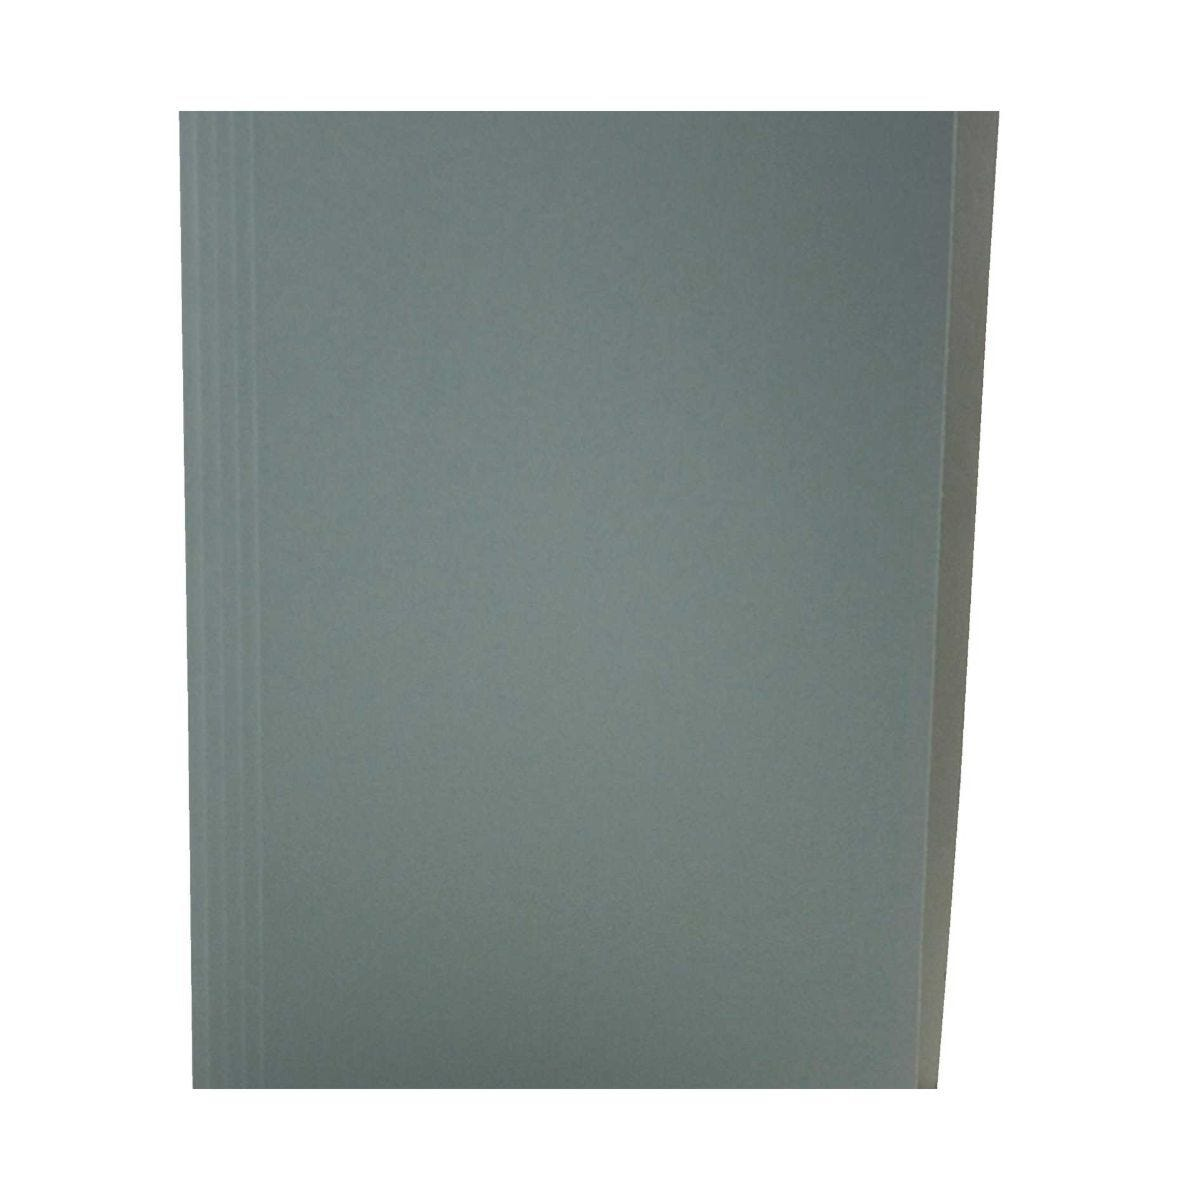 Square Cut Folders Foolscap Pack of 100 Green